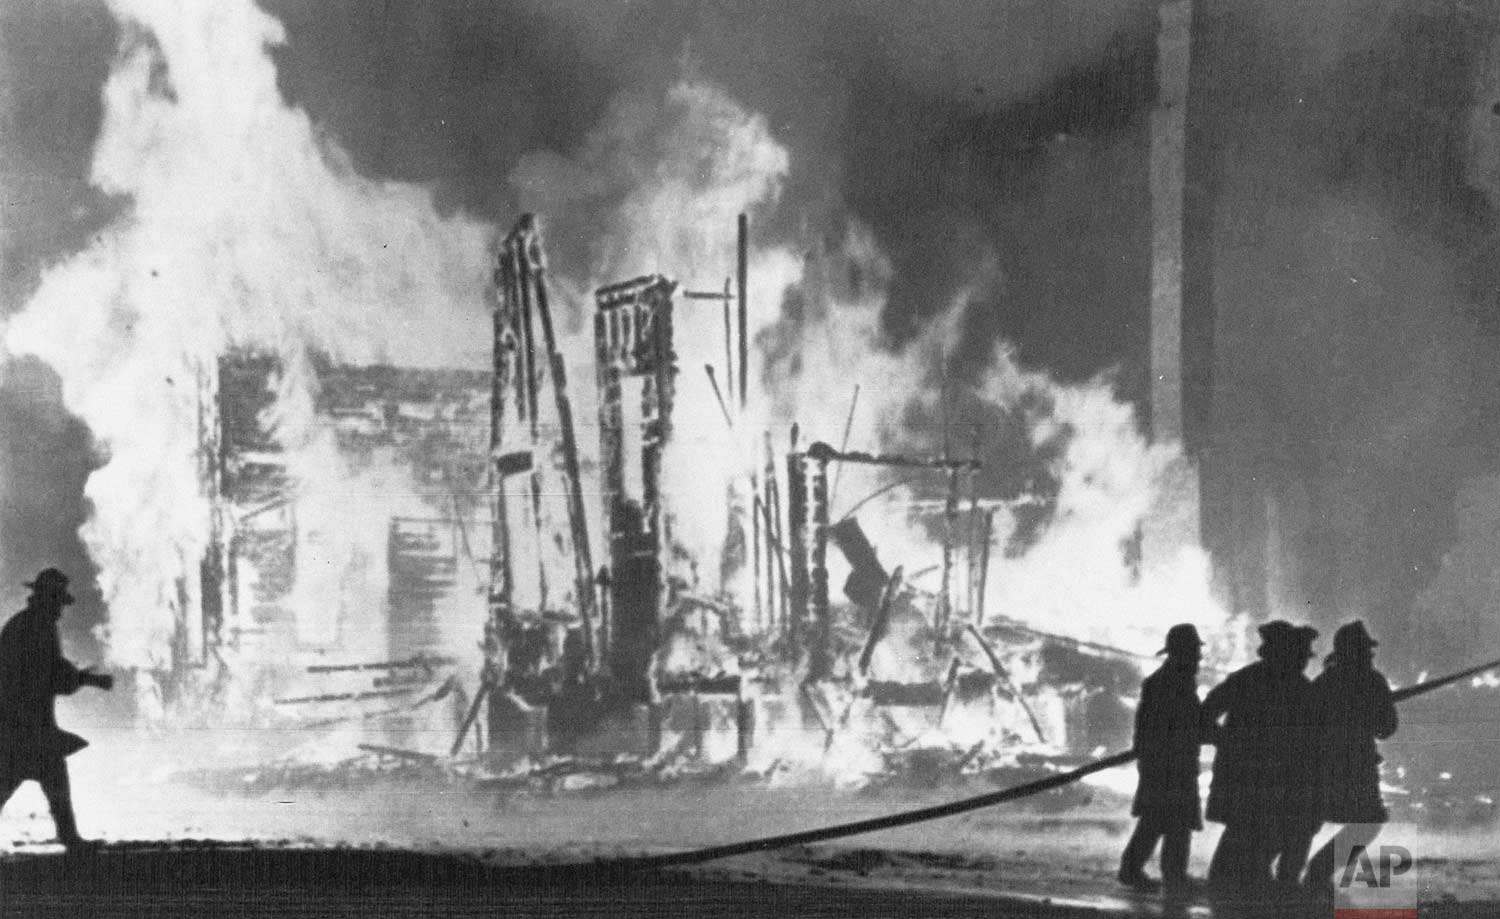 In this July 25, 1967 photo, firefighters try to control blazing buildings after riots in Detroit. Hundreds of fires were reported in the city. Five days of violence would leave 33 blacks and 10 whites dead, and more than 1,400 buildings burned. More than 7,000 people were arrested. (AP Photo)